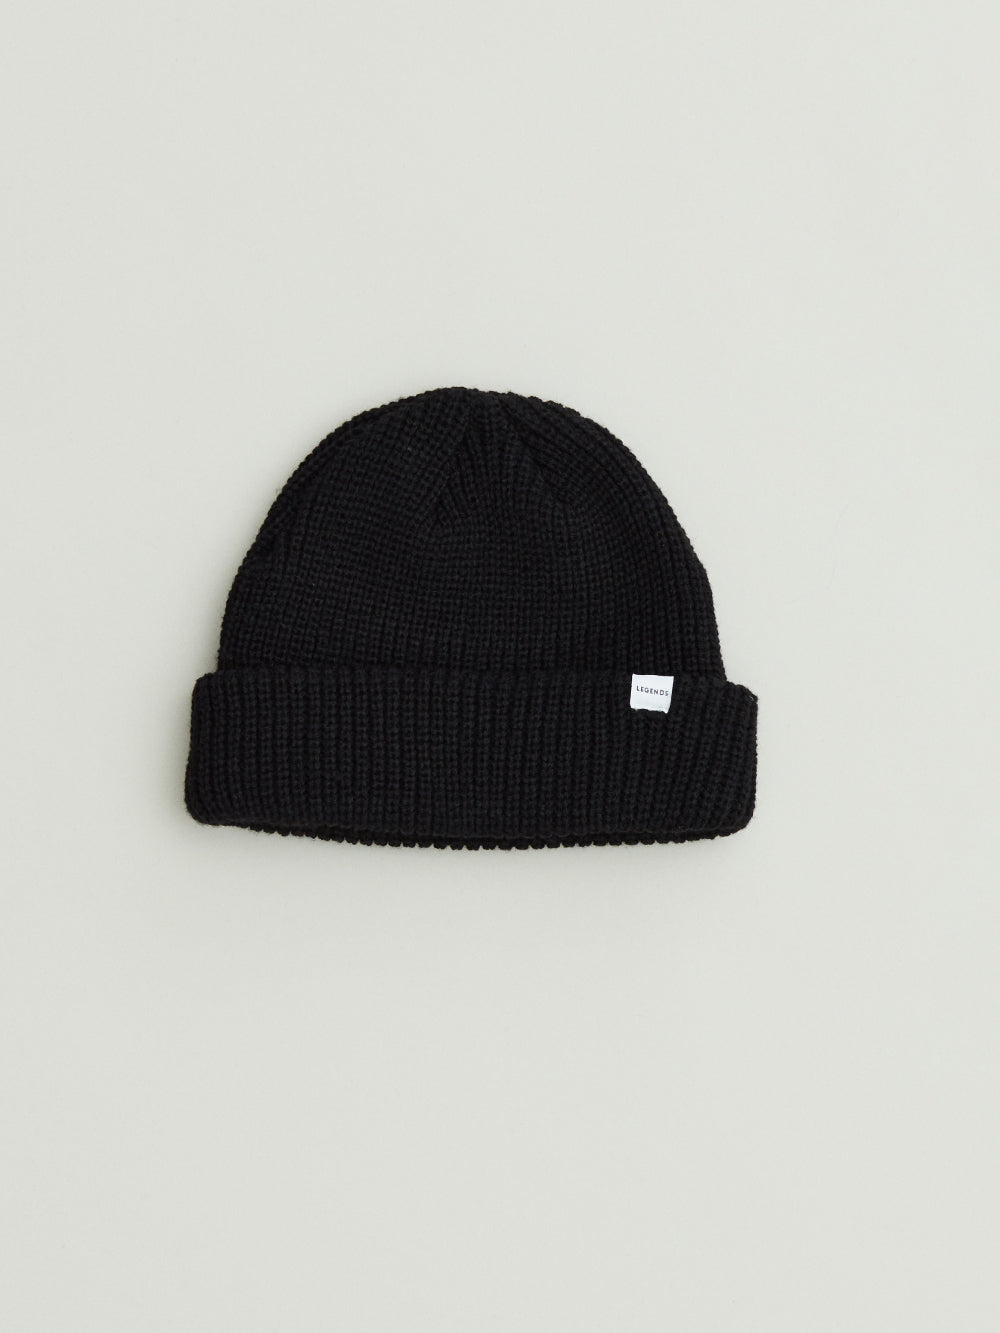 Northern Beanie | Black